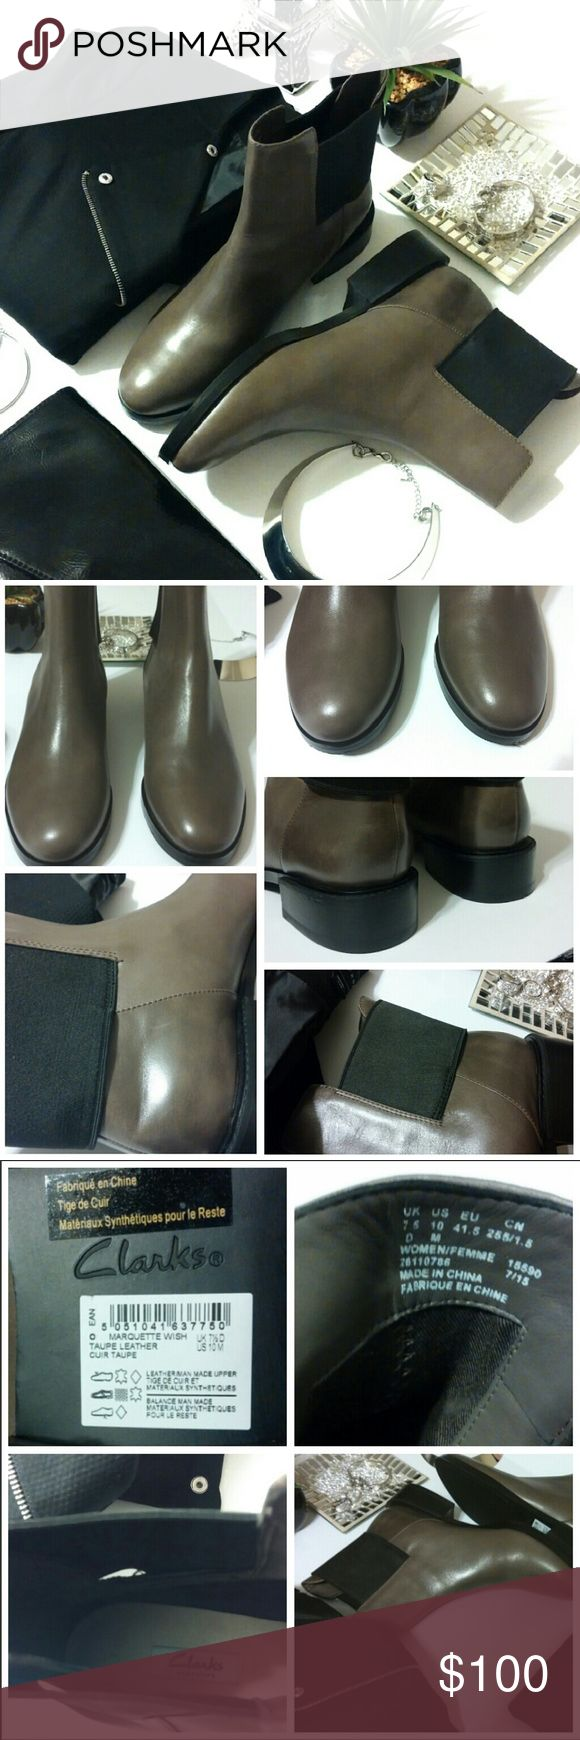 💎NWOB °Clarks° Taupe Leather Slip-on Boots *These brand new Clarks boots are HOT!!!  They are taupe, with a genuine leather/ man-made upper (the elastic band).  The elastic band is to ensure easy slip-on.  They are so comfortable, and very well-made.  There are minor scratches due to in store try ons (nothing major or noticeable).  These boots are the perfect neutral to add to your collection.   They will make any outfit fabulous!* Clarks Shoes Ankle Boots & Booties